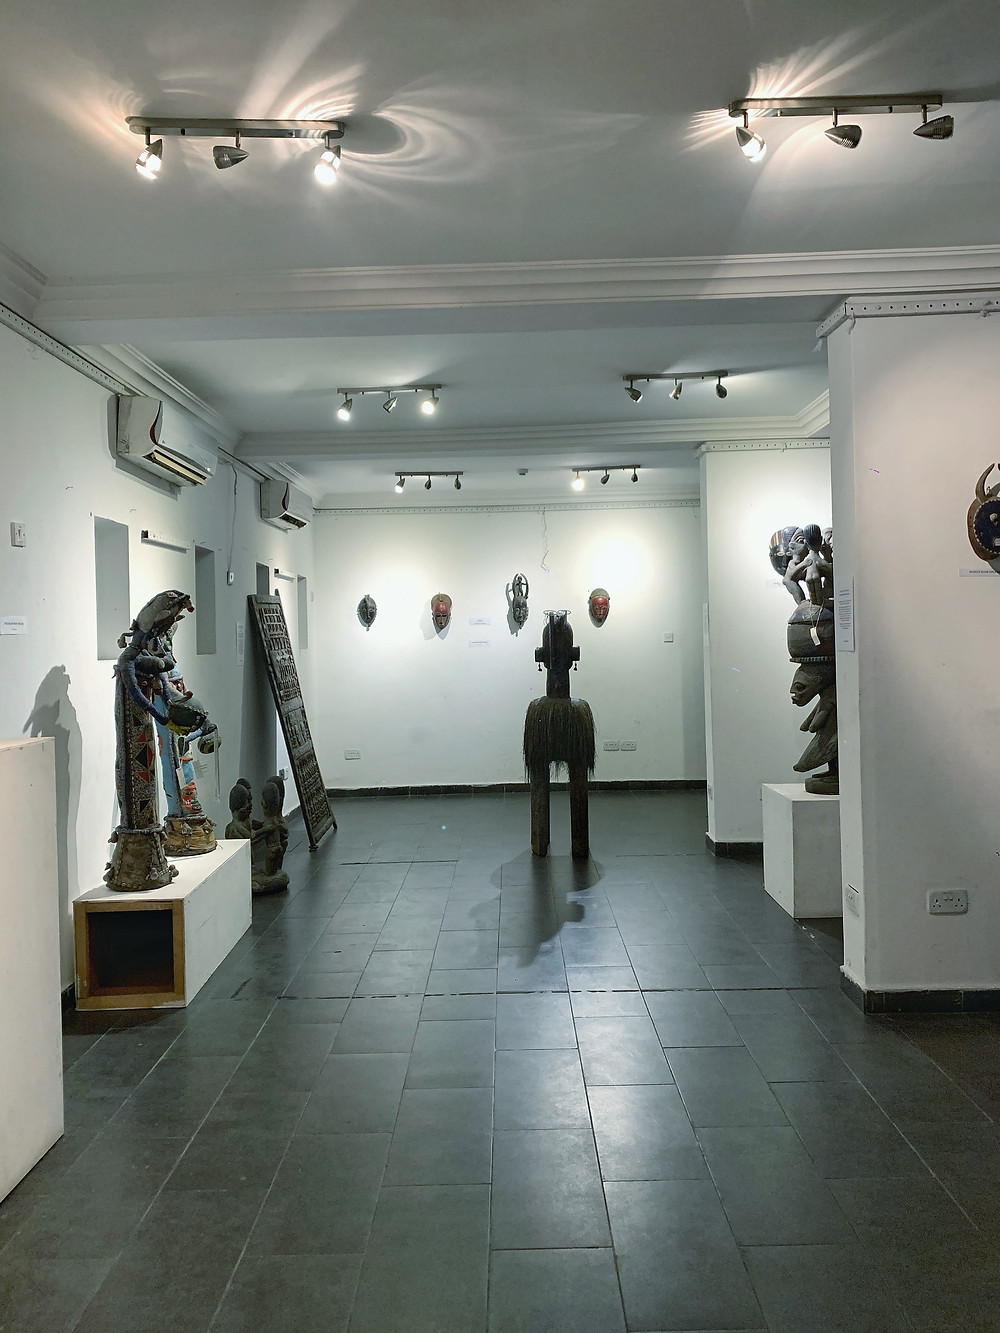 It houses a collection of West African sculptures from the Alkebulan collection in Lagos